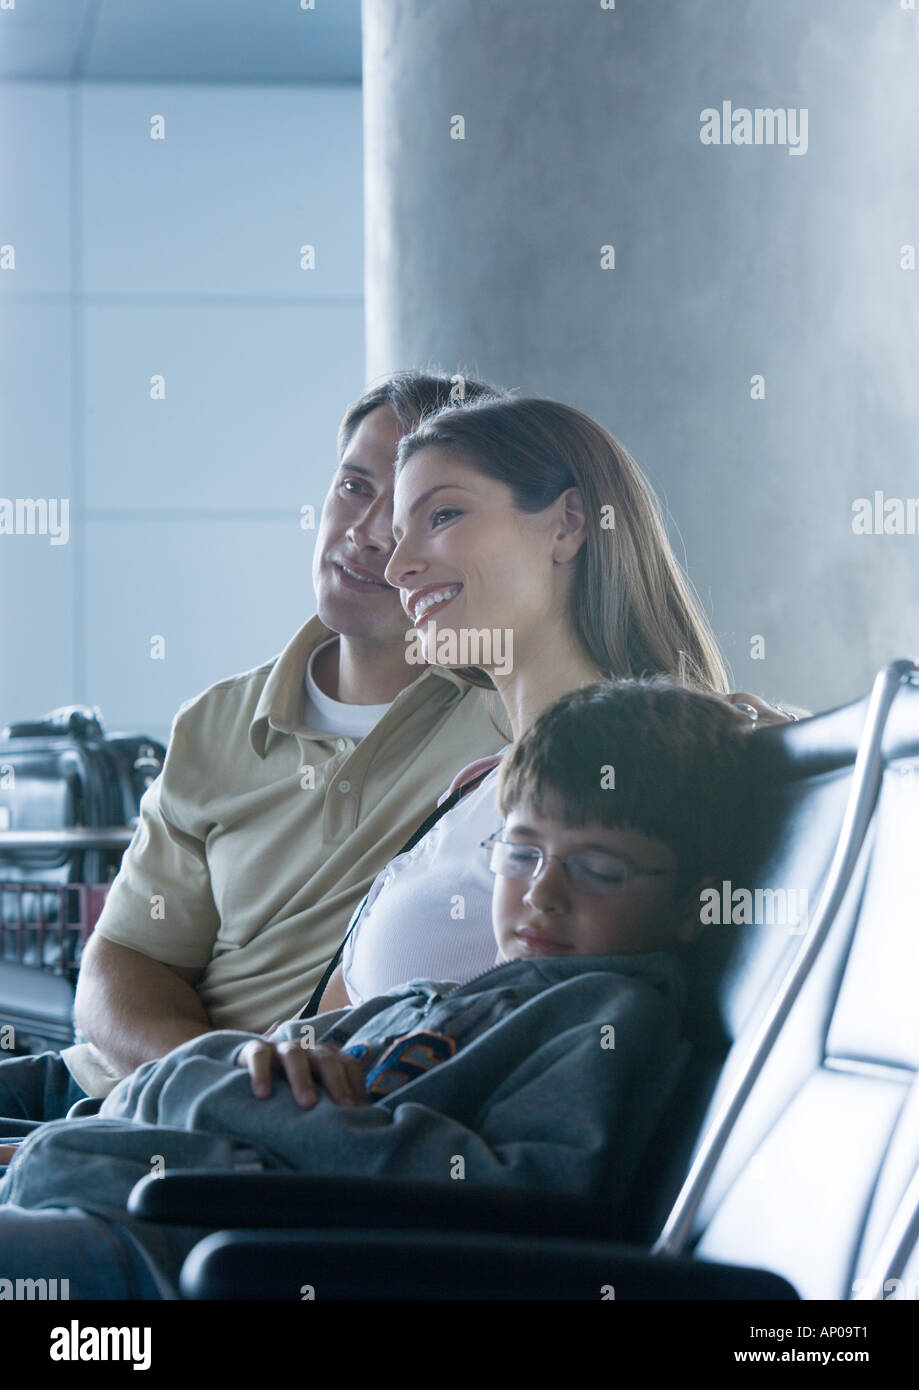 Family sitting in airport lounge, boy sleeping Stock Photo